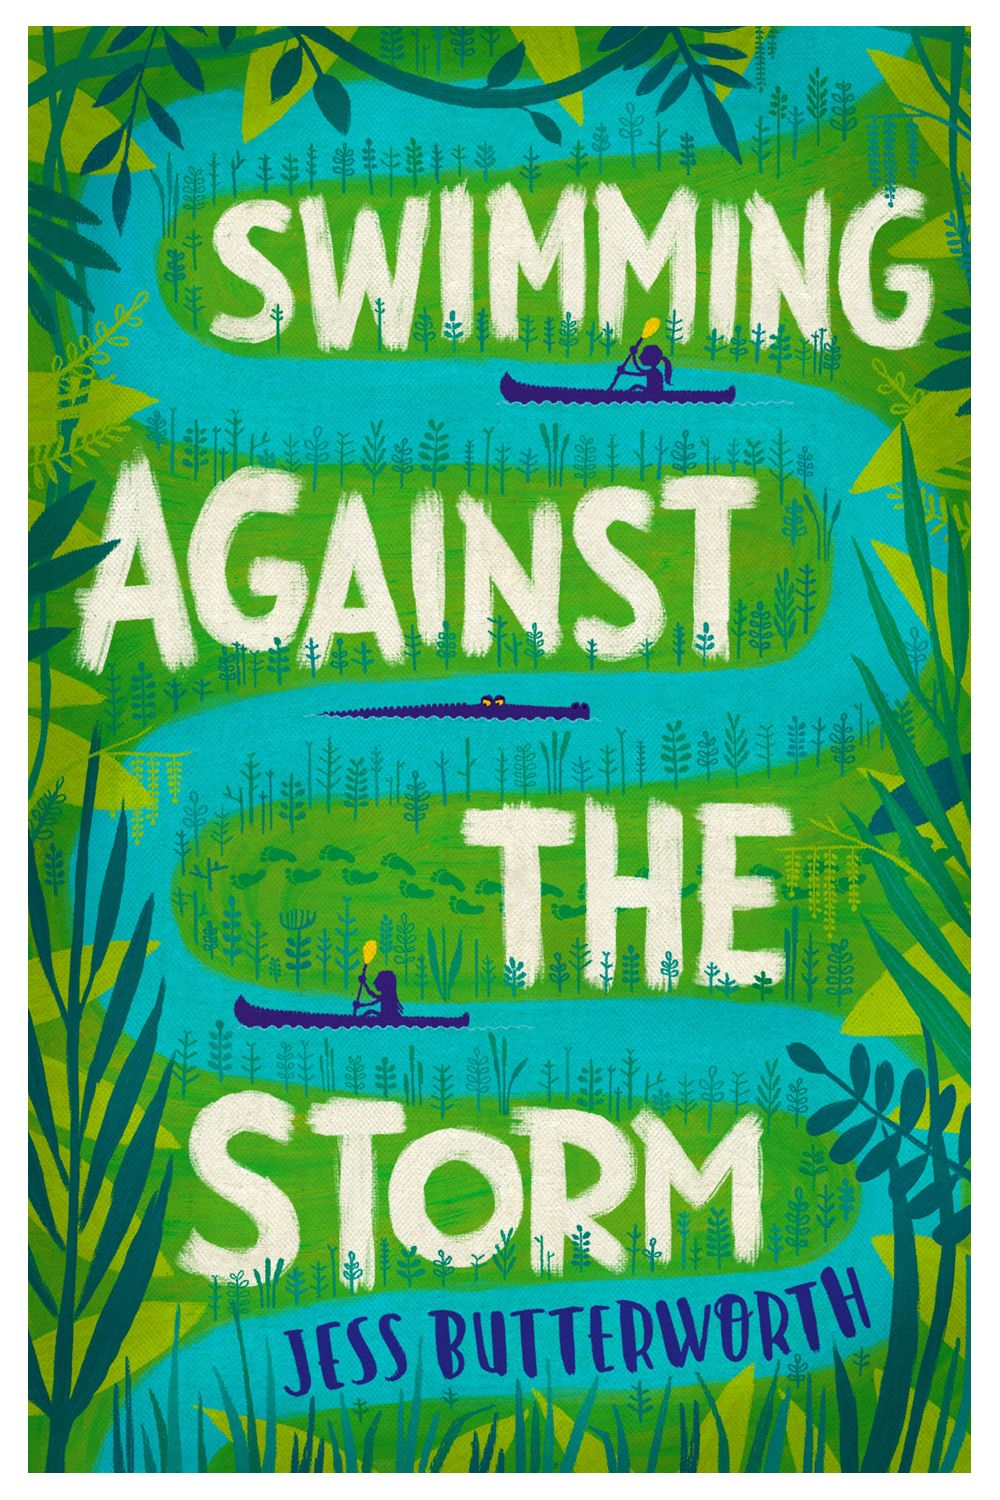 Swimming Against the Storm by Jess Butterworth